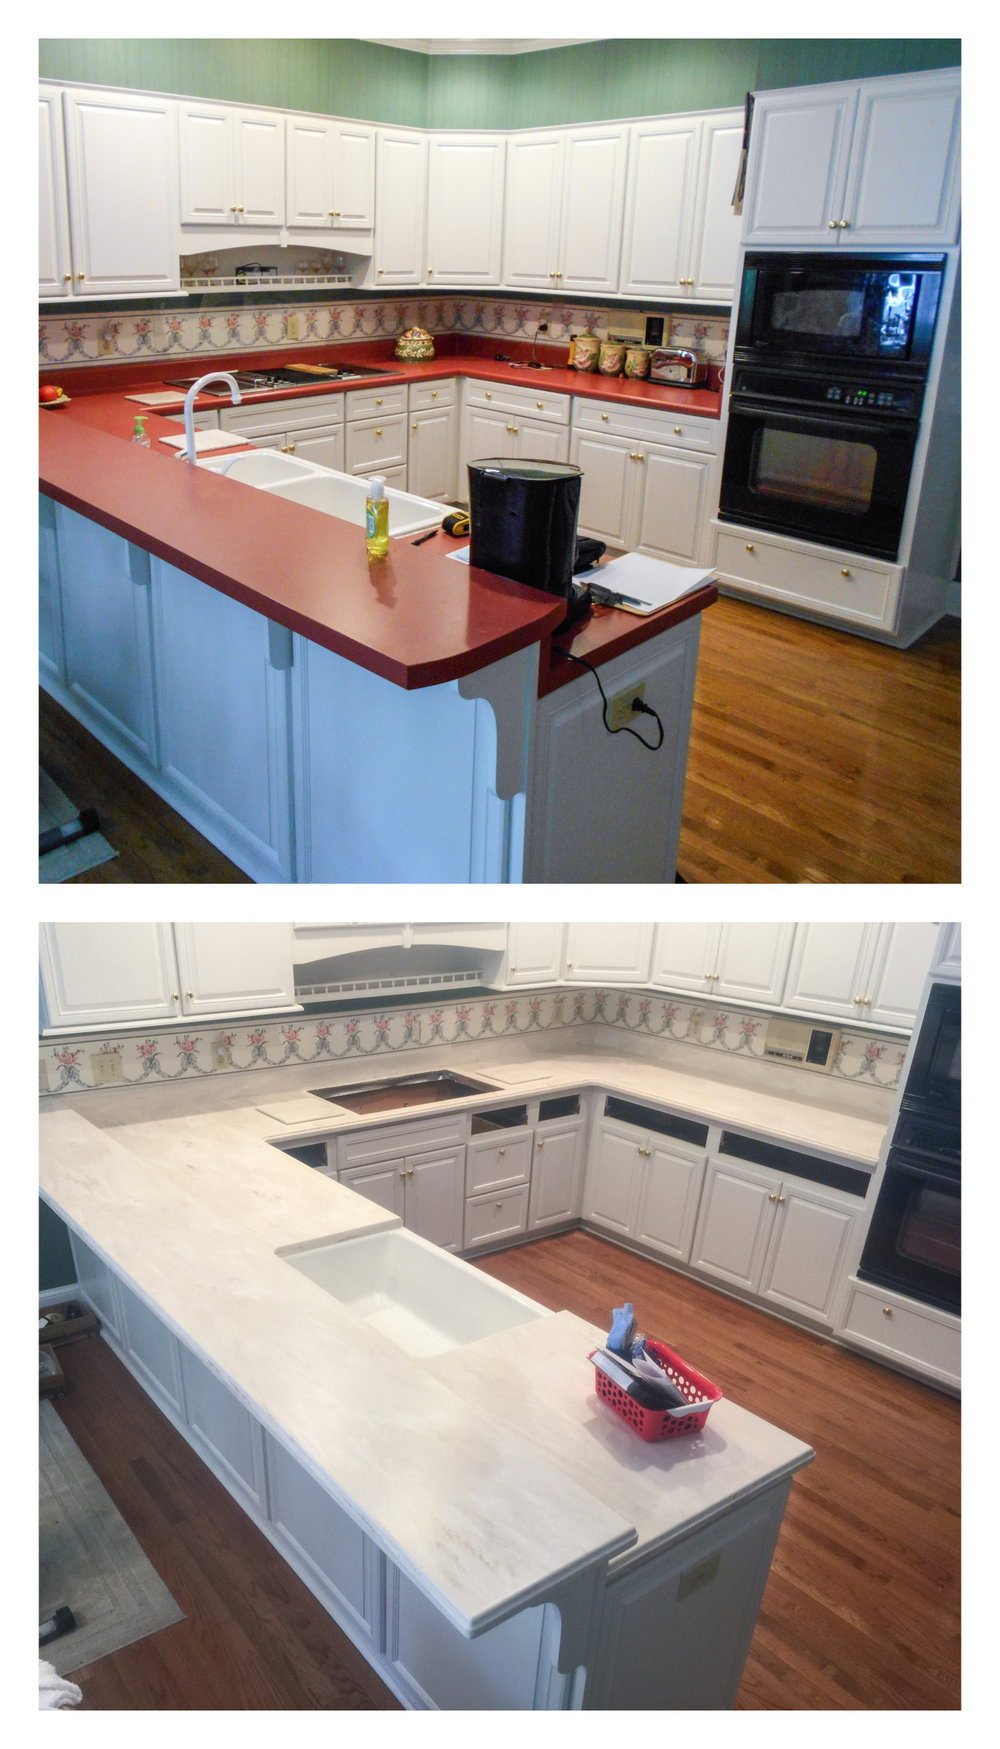 This local kitchen made the switch from laminate to solid surface!